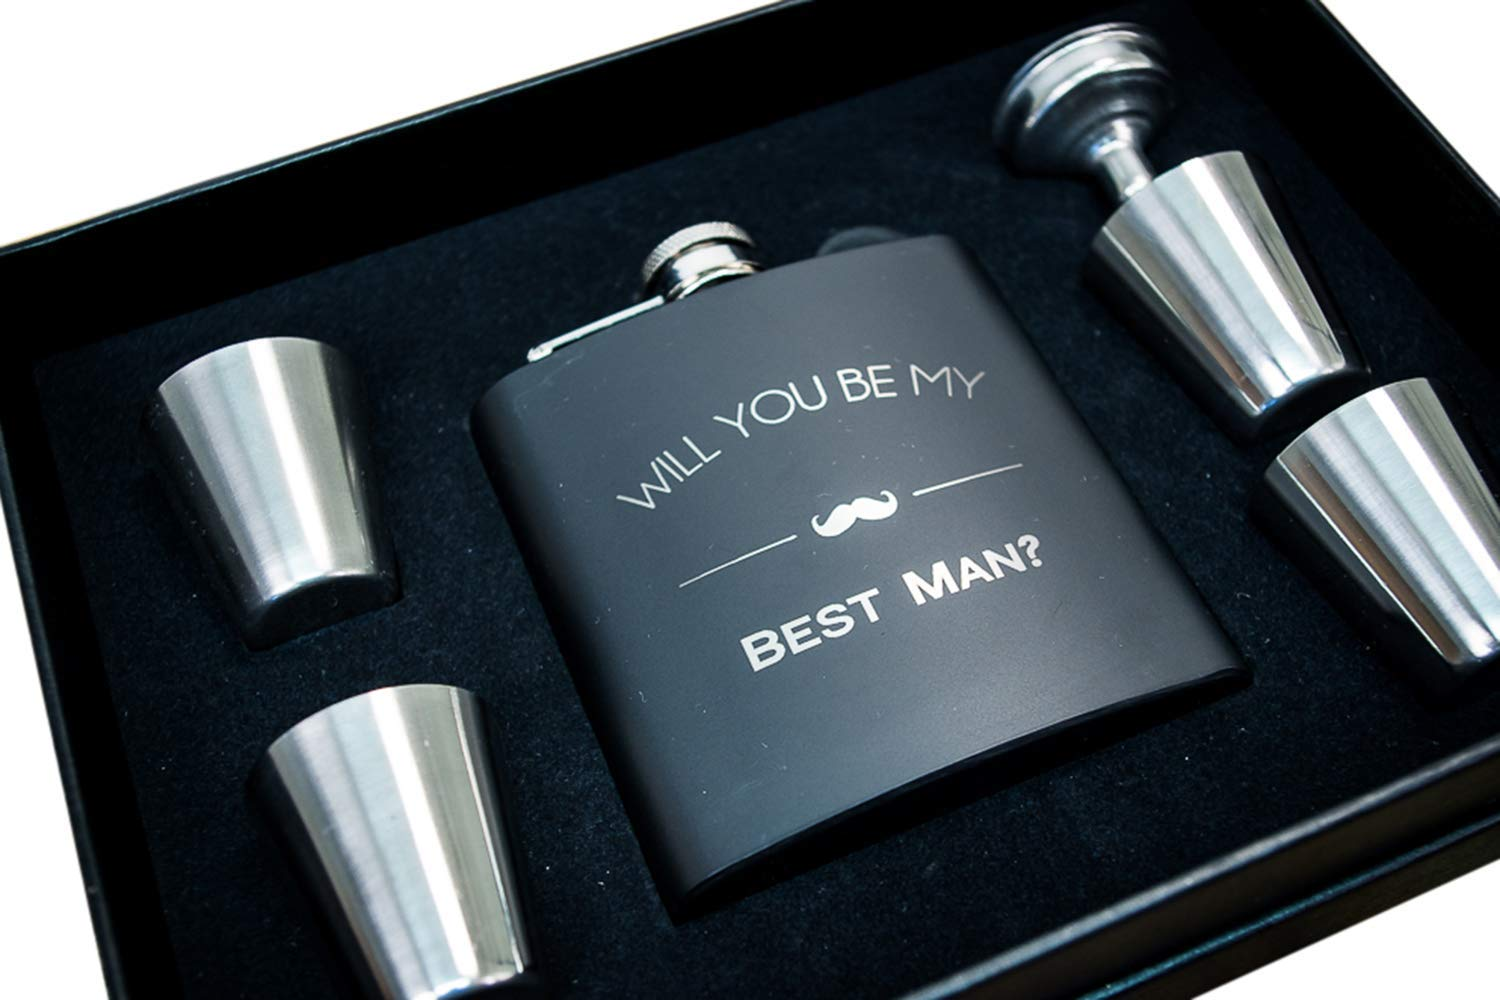 Will You Be My Best Man Flask Box Set- Best Man Proposal Gifts- Whiskey Flasks For Asking Best Men – Extra Thick 5mil #304 Stainless Steel, Laser Engraved, Leak Proof Kit Bestman 652